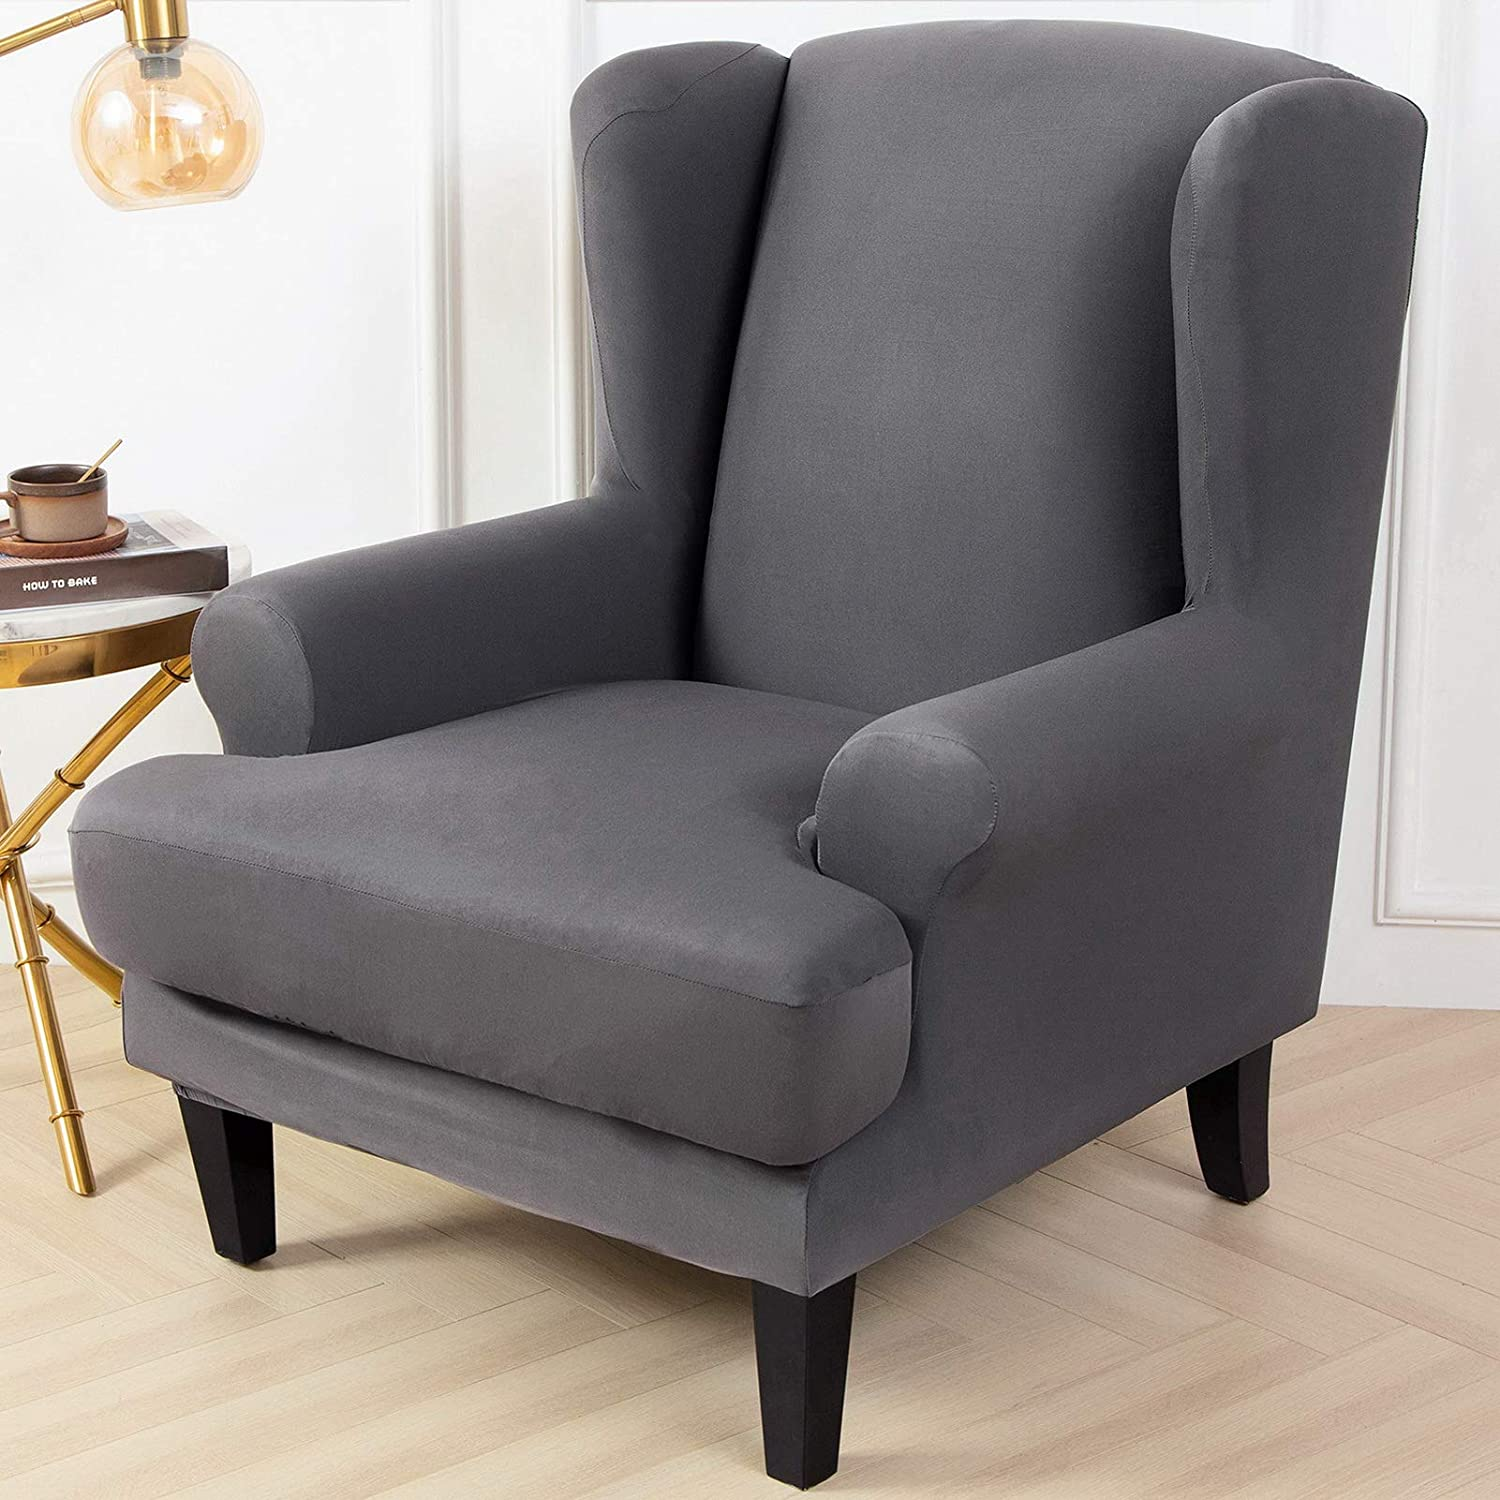 papasgix Wing Chair Covers Elastic 2-Piece Wingback Armchair Covers with Removable Arms Slipcovers Fabric Couch Slipcover Polyester Spandex Furniture Protector,Sliver Grey